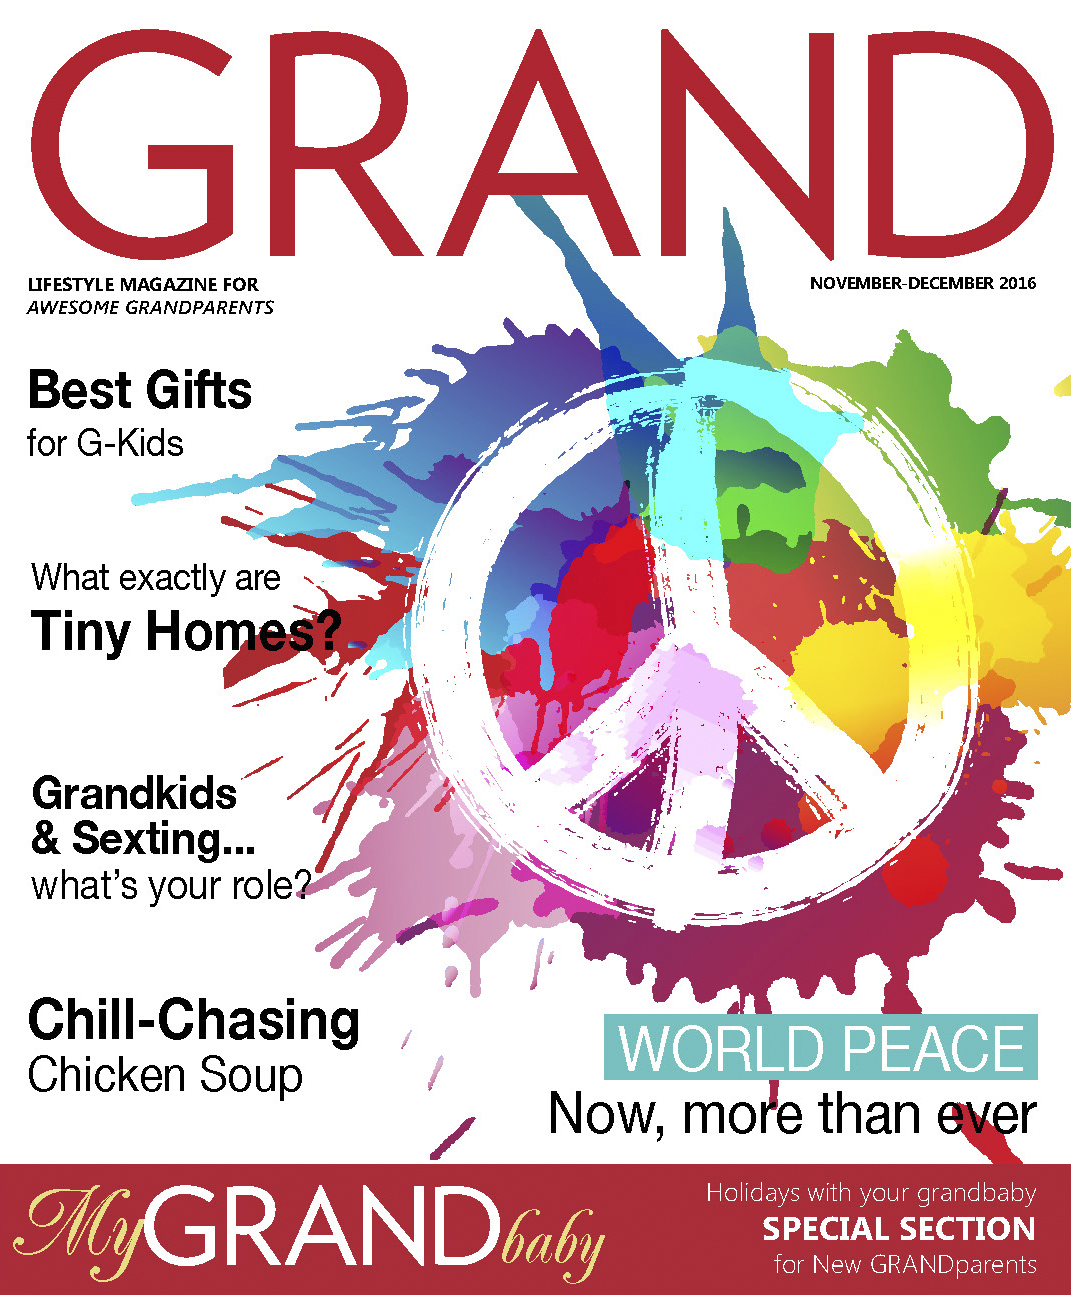 Nov/Dec 2016 GRAND Magazine cover